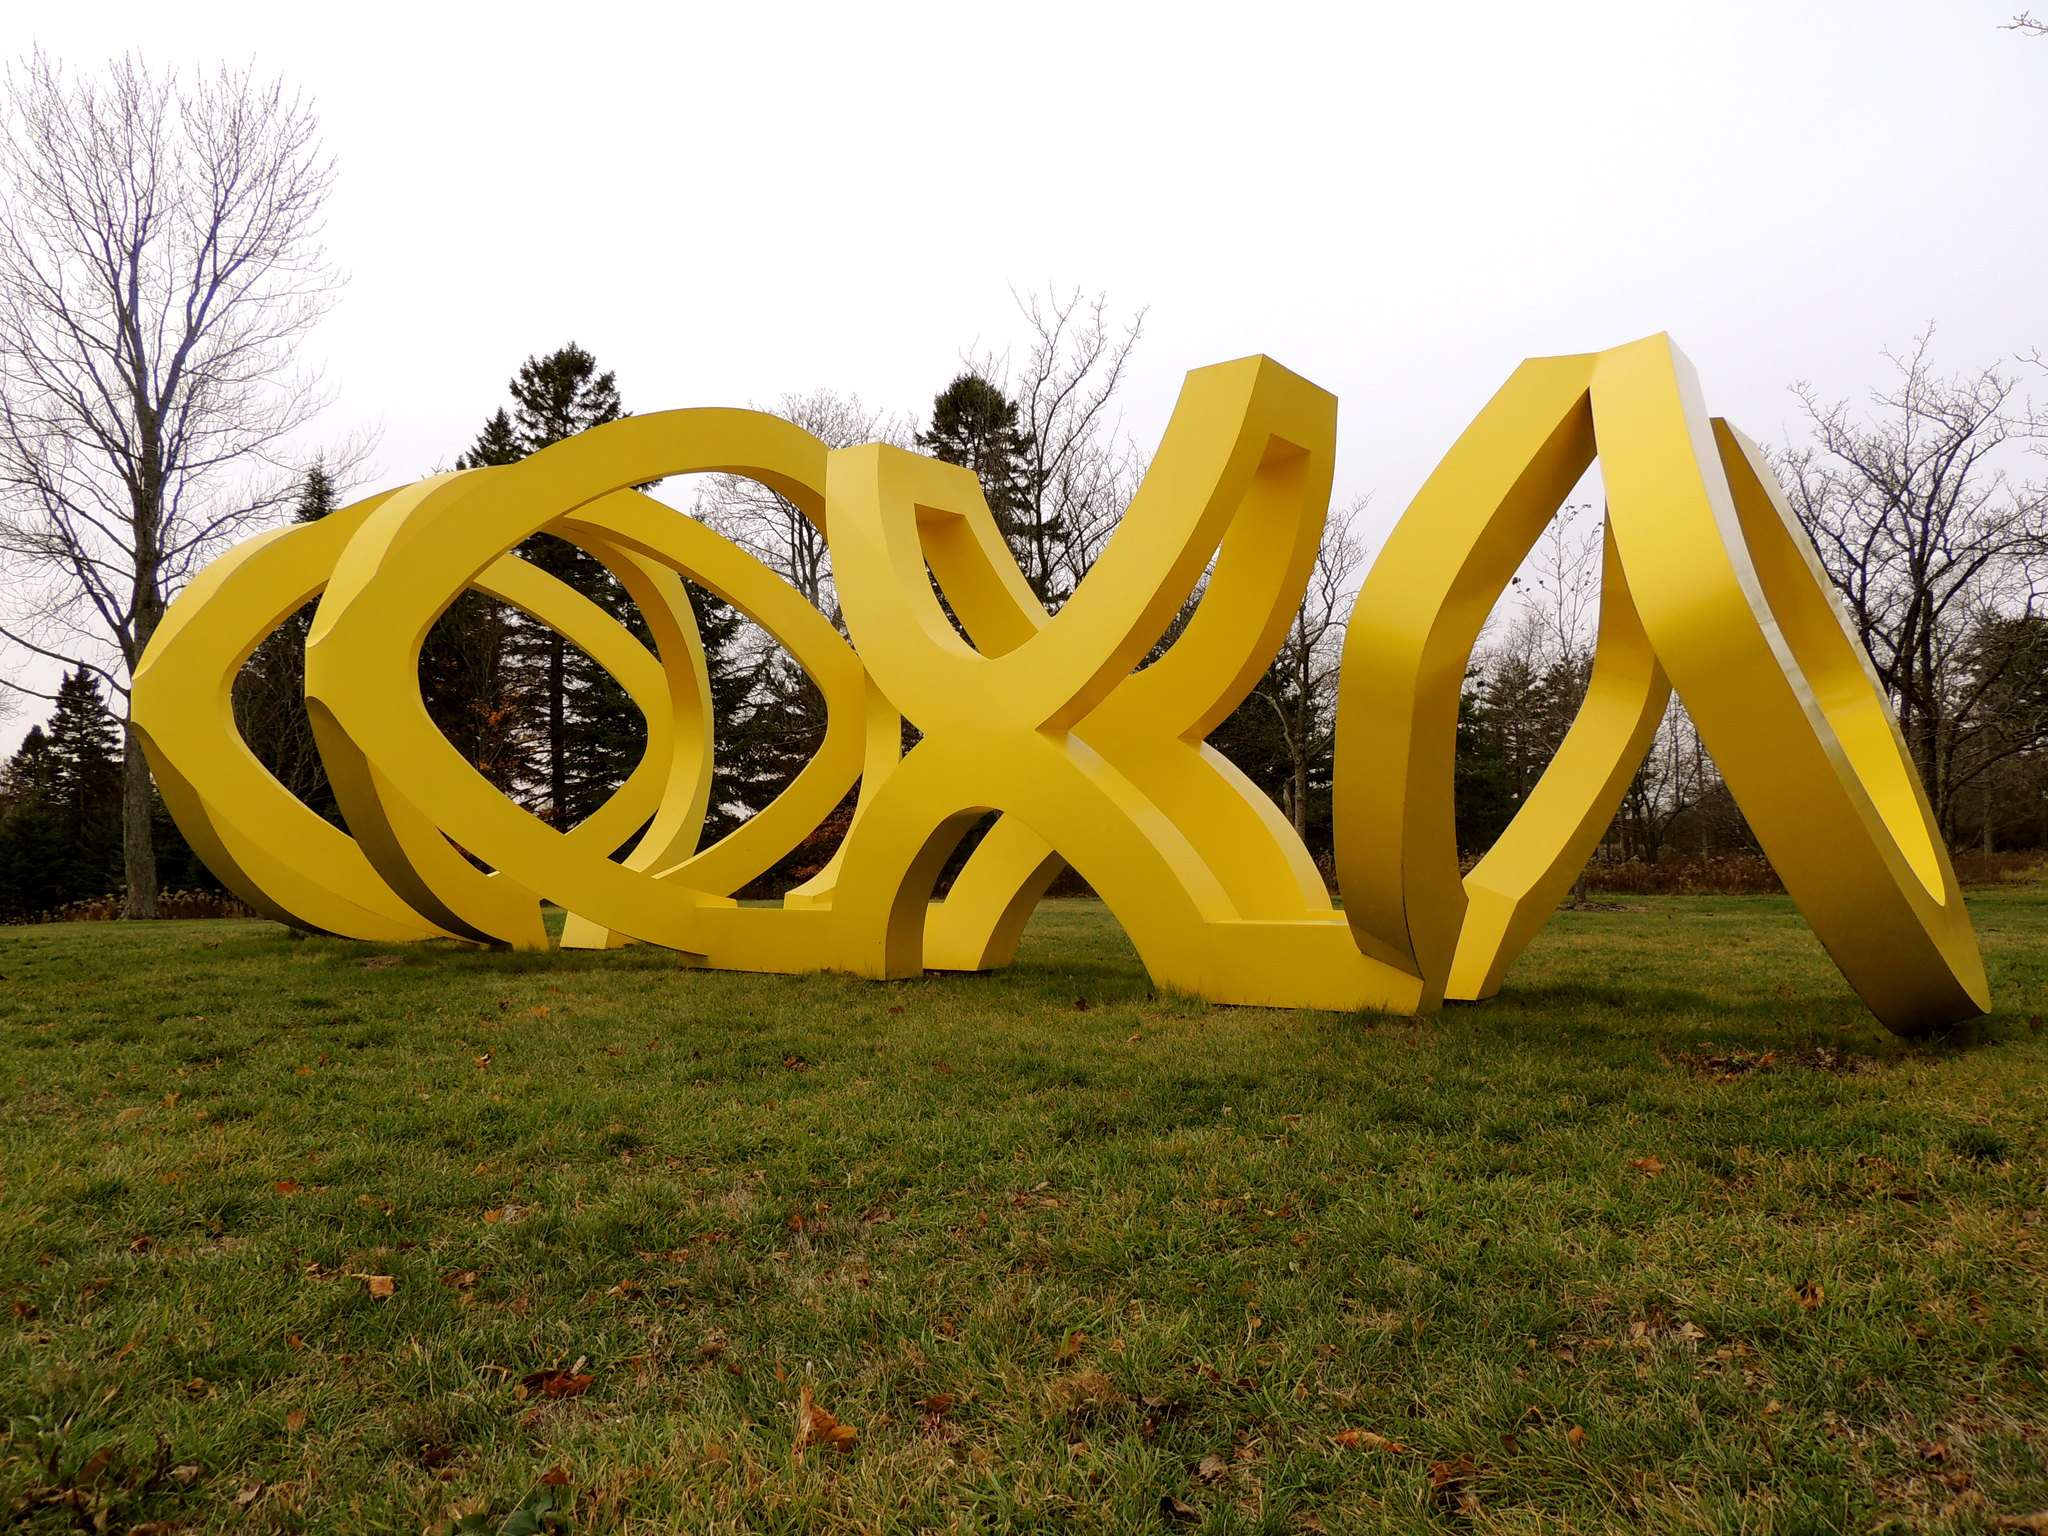 """""""Trio"""" by George Sugarman, 1972-1973 is one of the many outdoor sculptures visitors to the Lynden Sculpture Garden can see."""